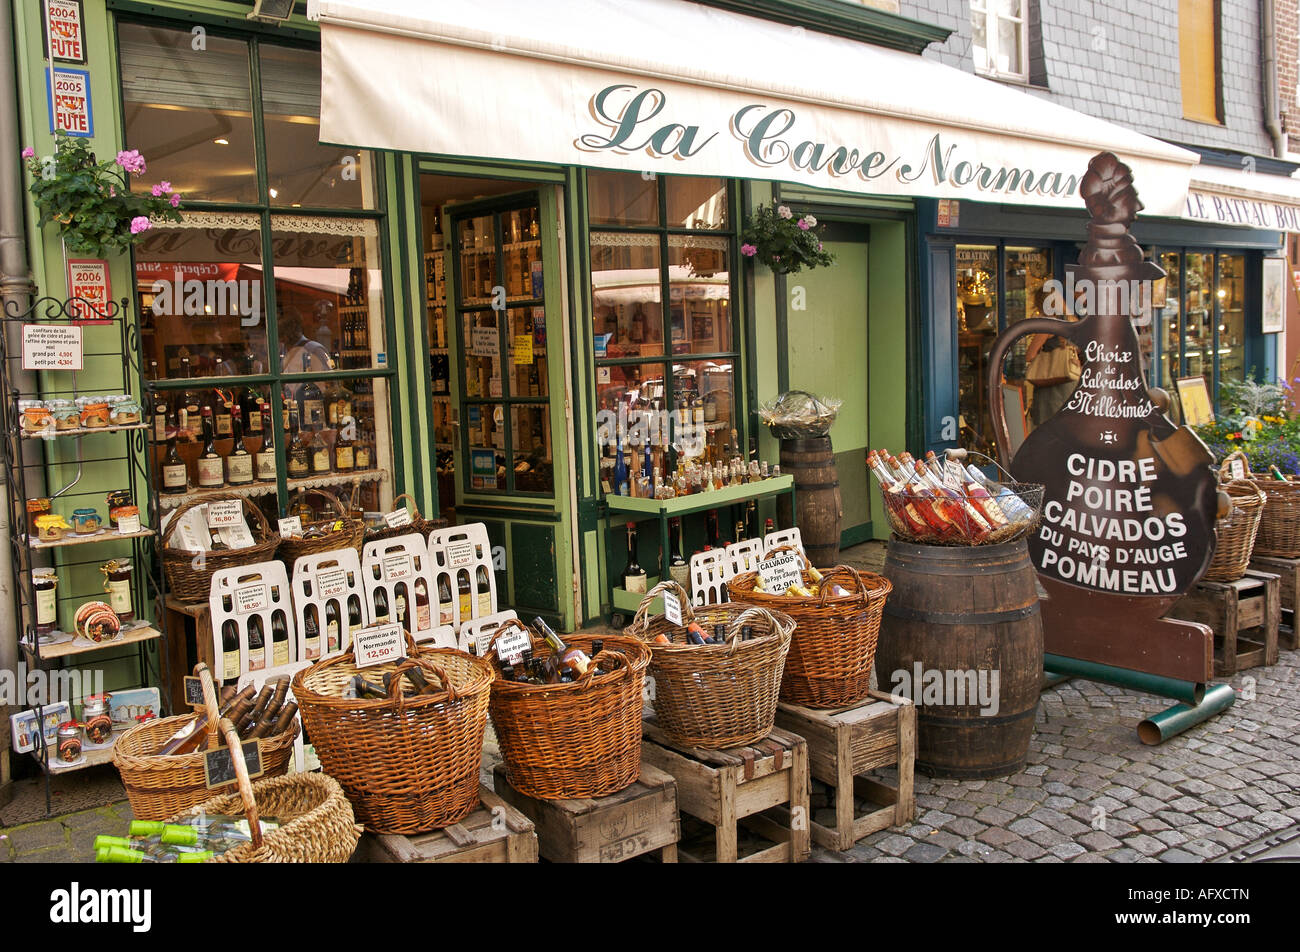 Local produce store selling drinks at Honfleur in Normandy France - Stock Image